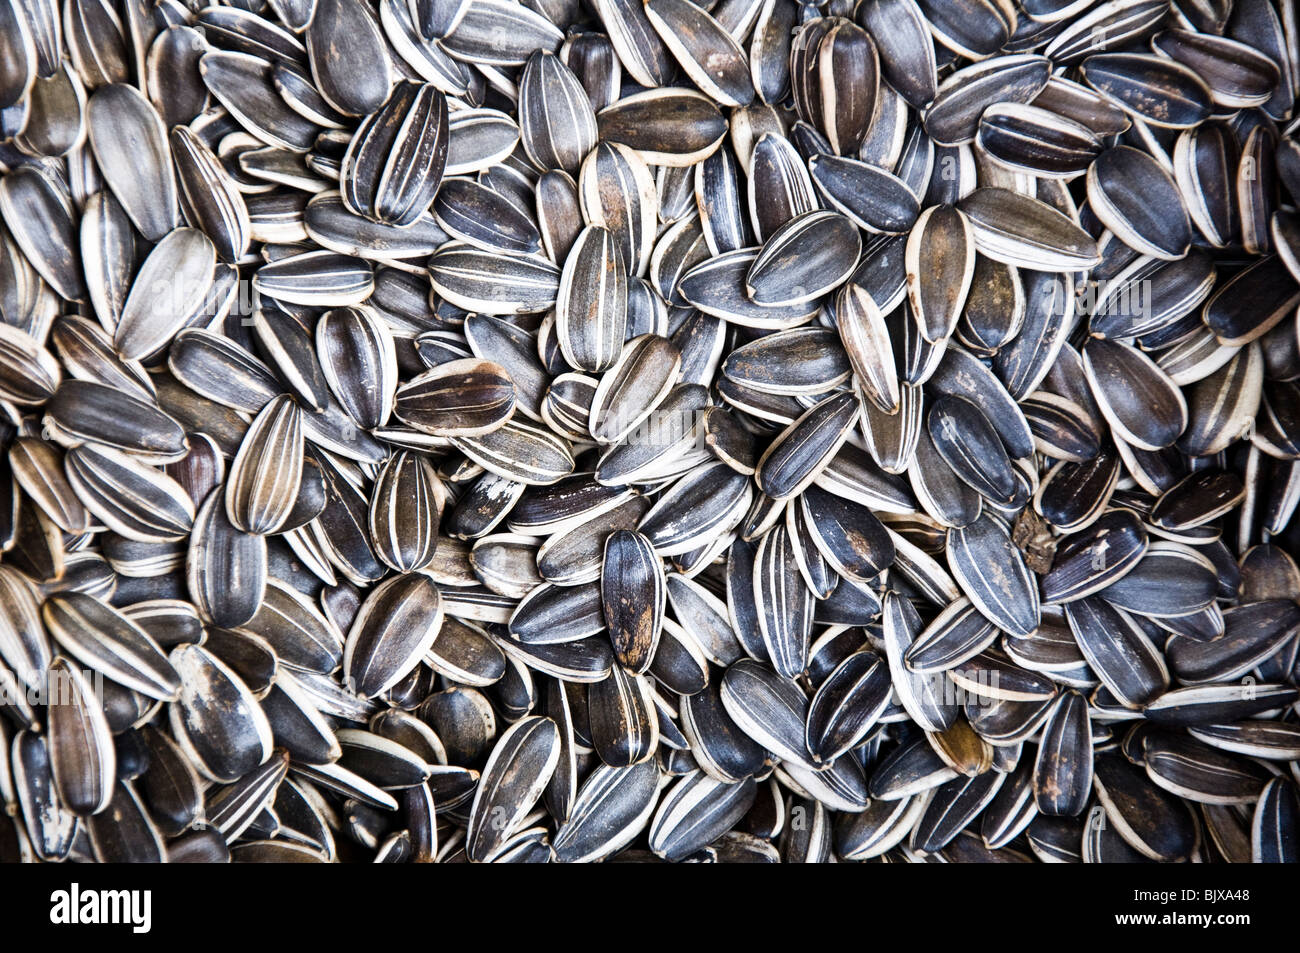 Sunflower seeds - Stock Image